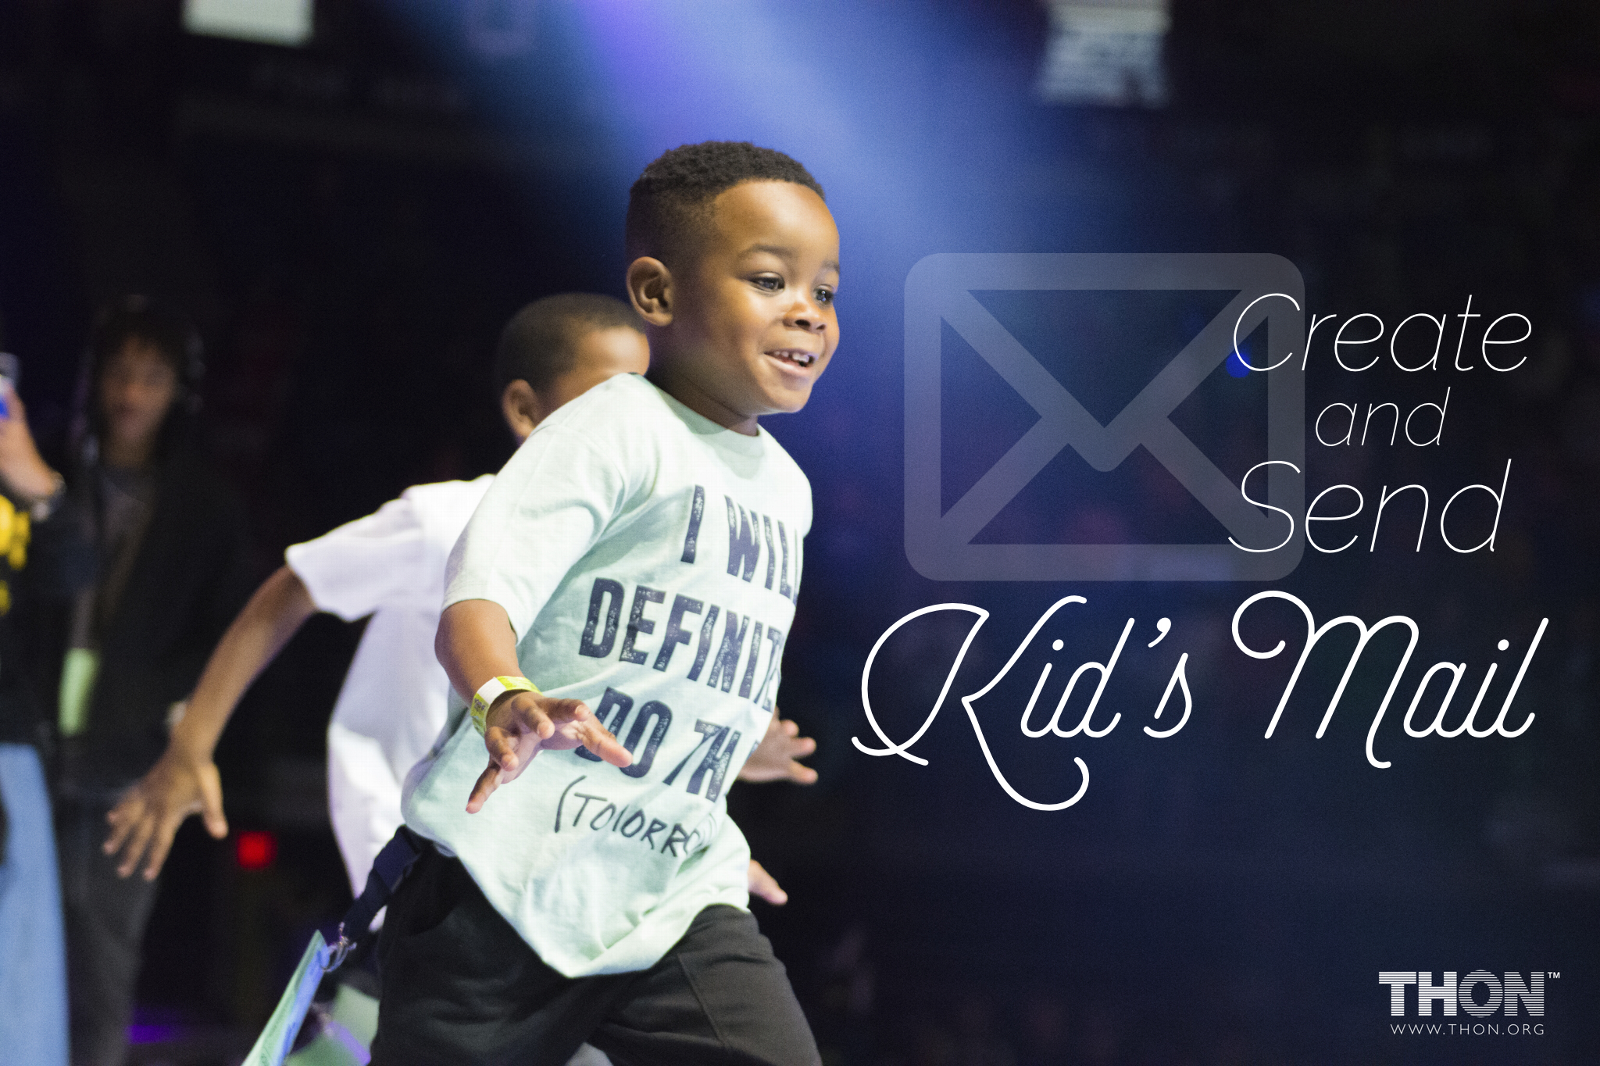 To scan and send Kid's Mail, click    here   .